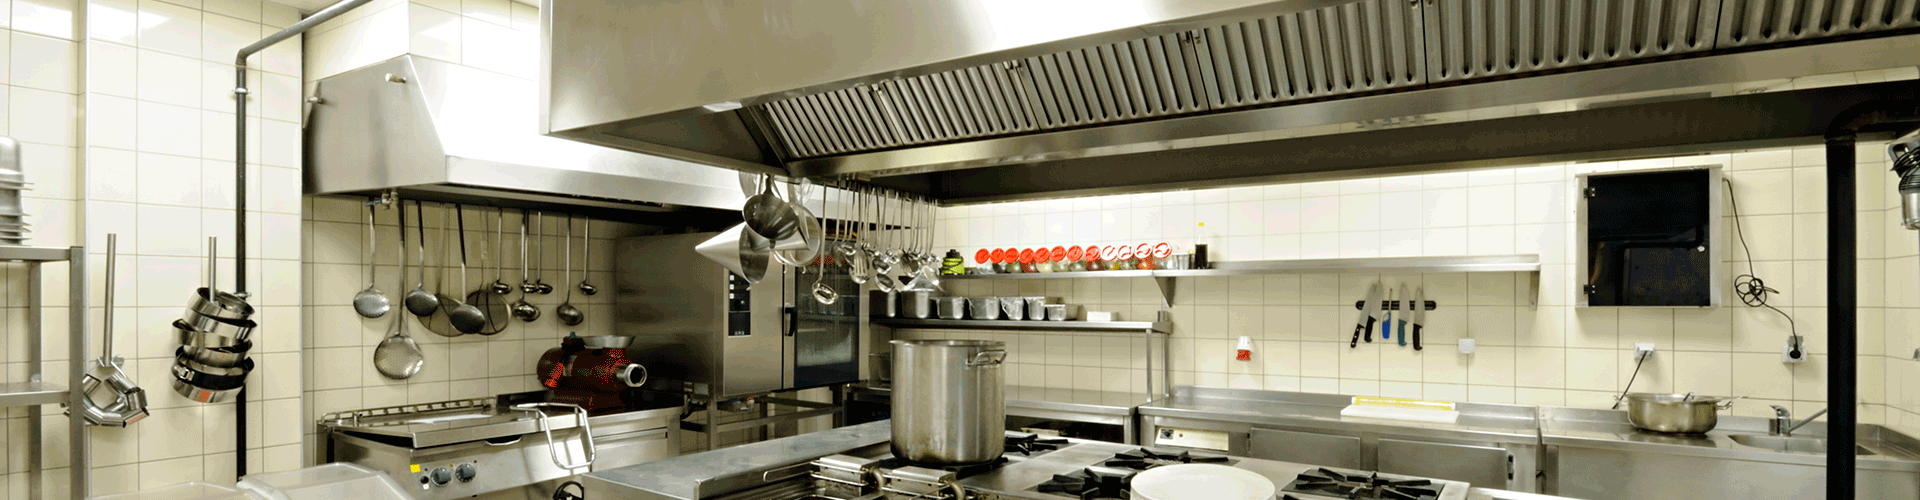 your hood by articles ventilation vila bob improve steps kitchen in maintaining range